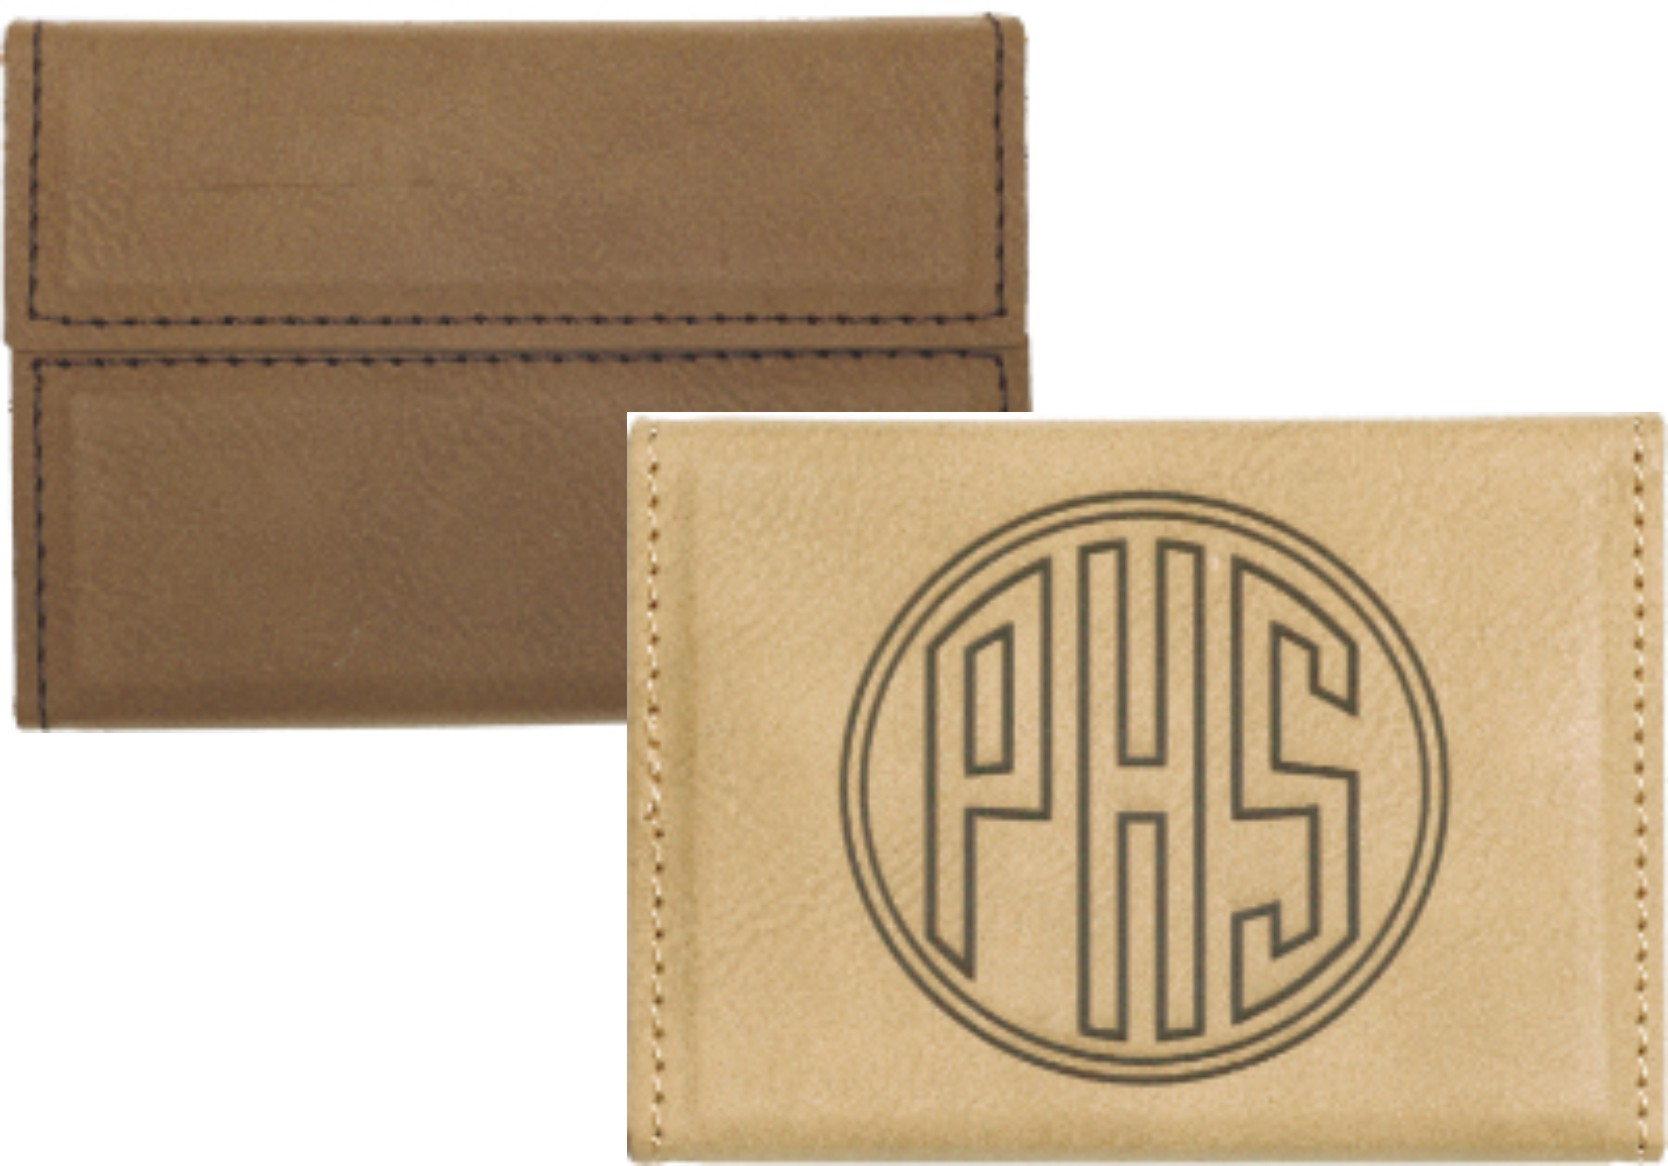 Hard Business Card Holder - GFT183/184